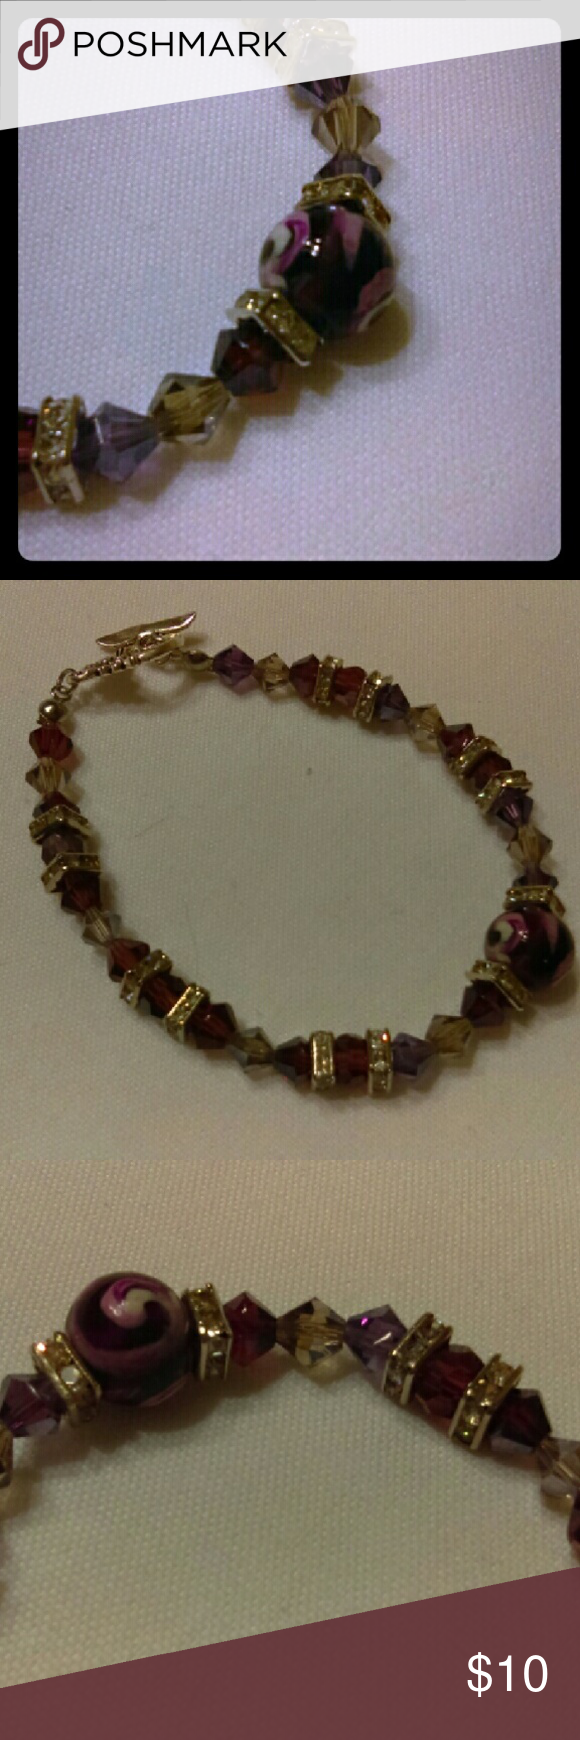 """Handmade Beaded Bracelet Purple Handmade beaded bracelet made with decorated purple glass beads, purple & smoke bicone crystals and silver & rhinestone accents. This bracelet measures 7.5"""", which is the average bracelet size. An extender can be added if necessary at no charge. Jewelry Bracelets"""